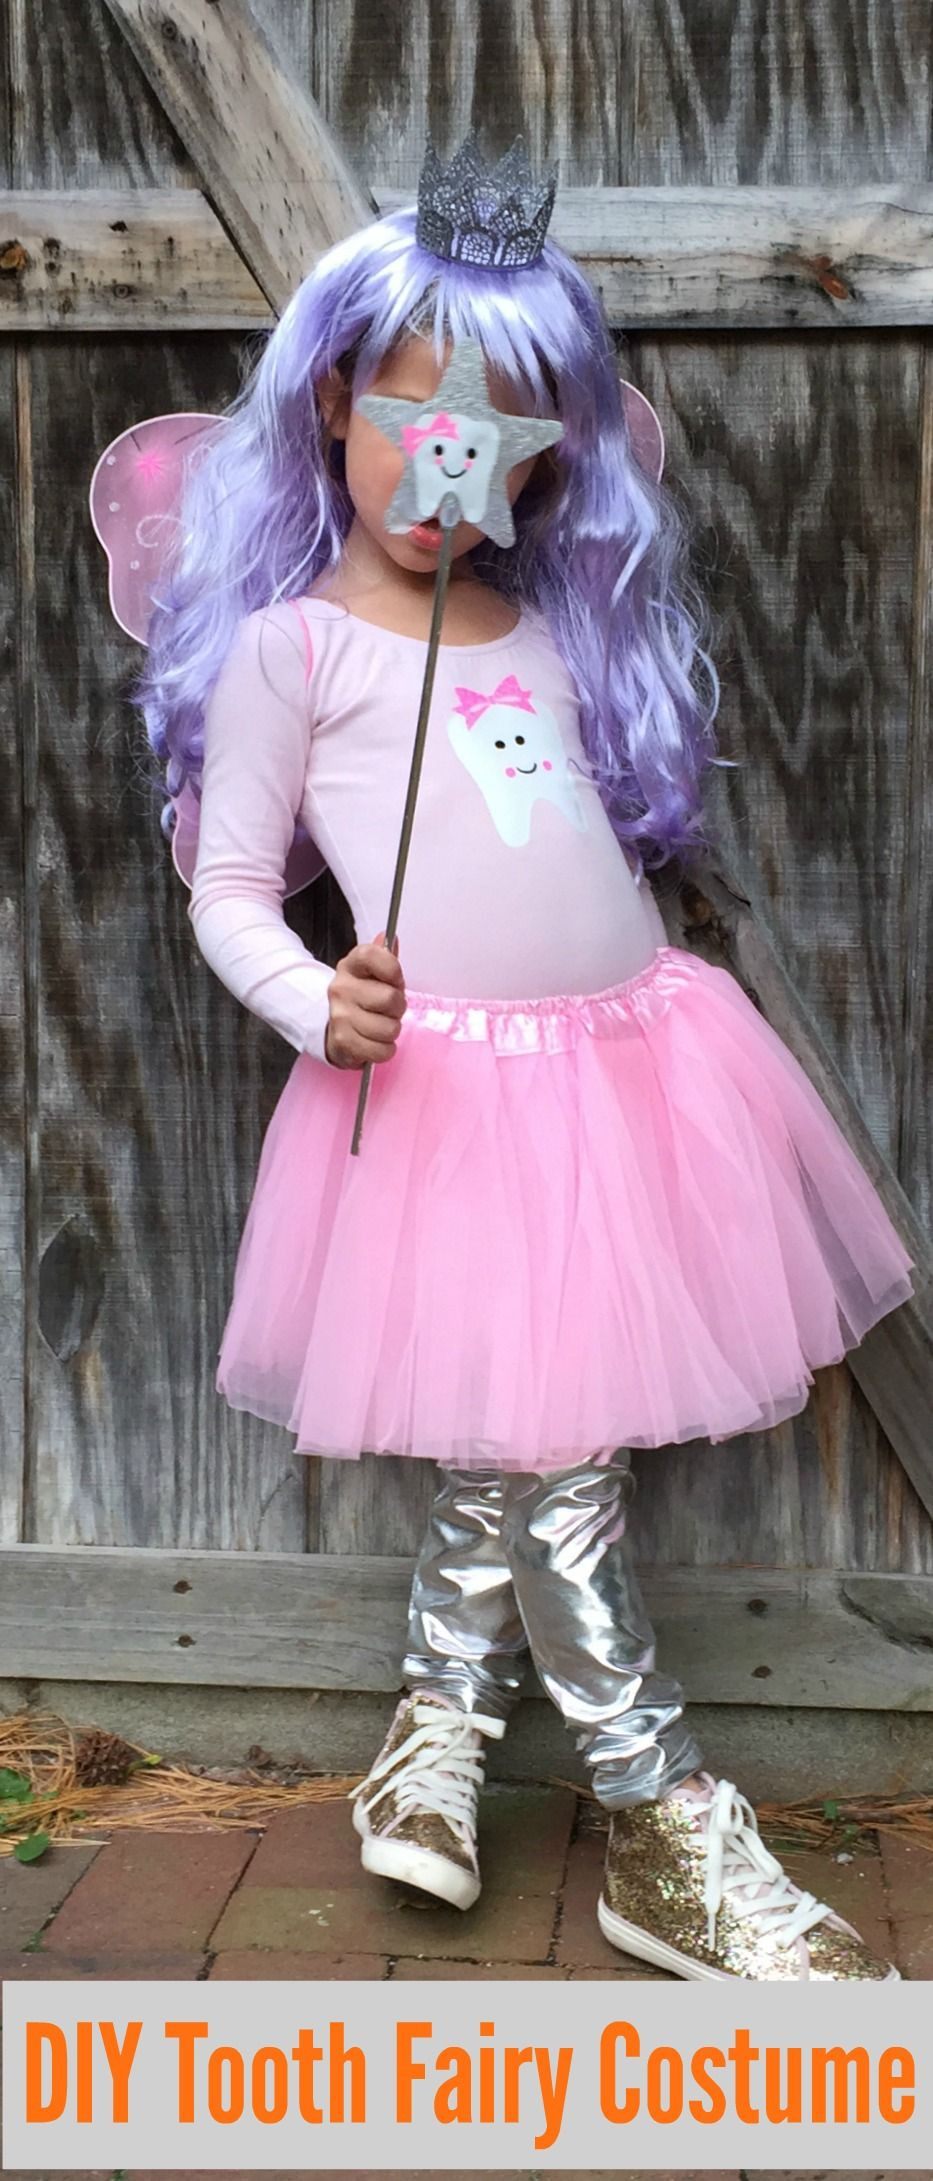 DIY Fairy Costumes For Kids  Easy DIY Halloween Costume for Kids The Tooth Fairy